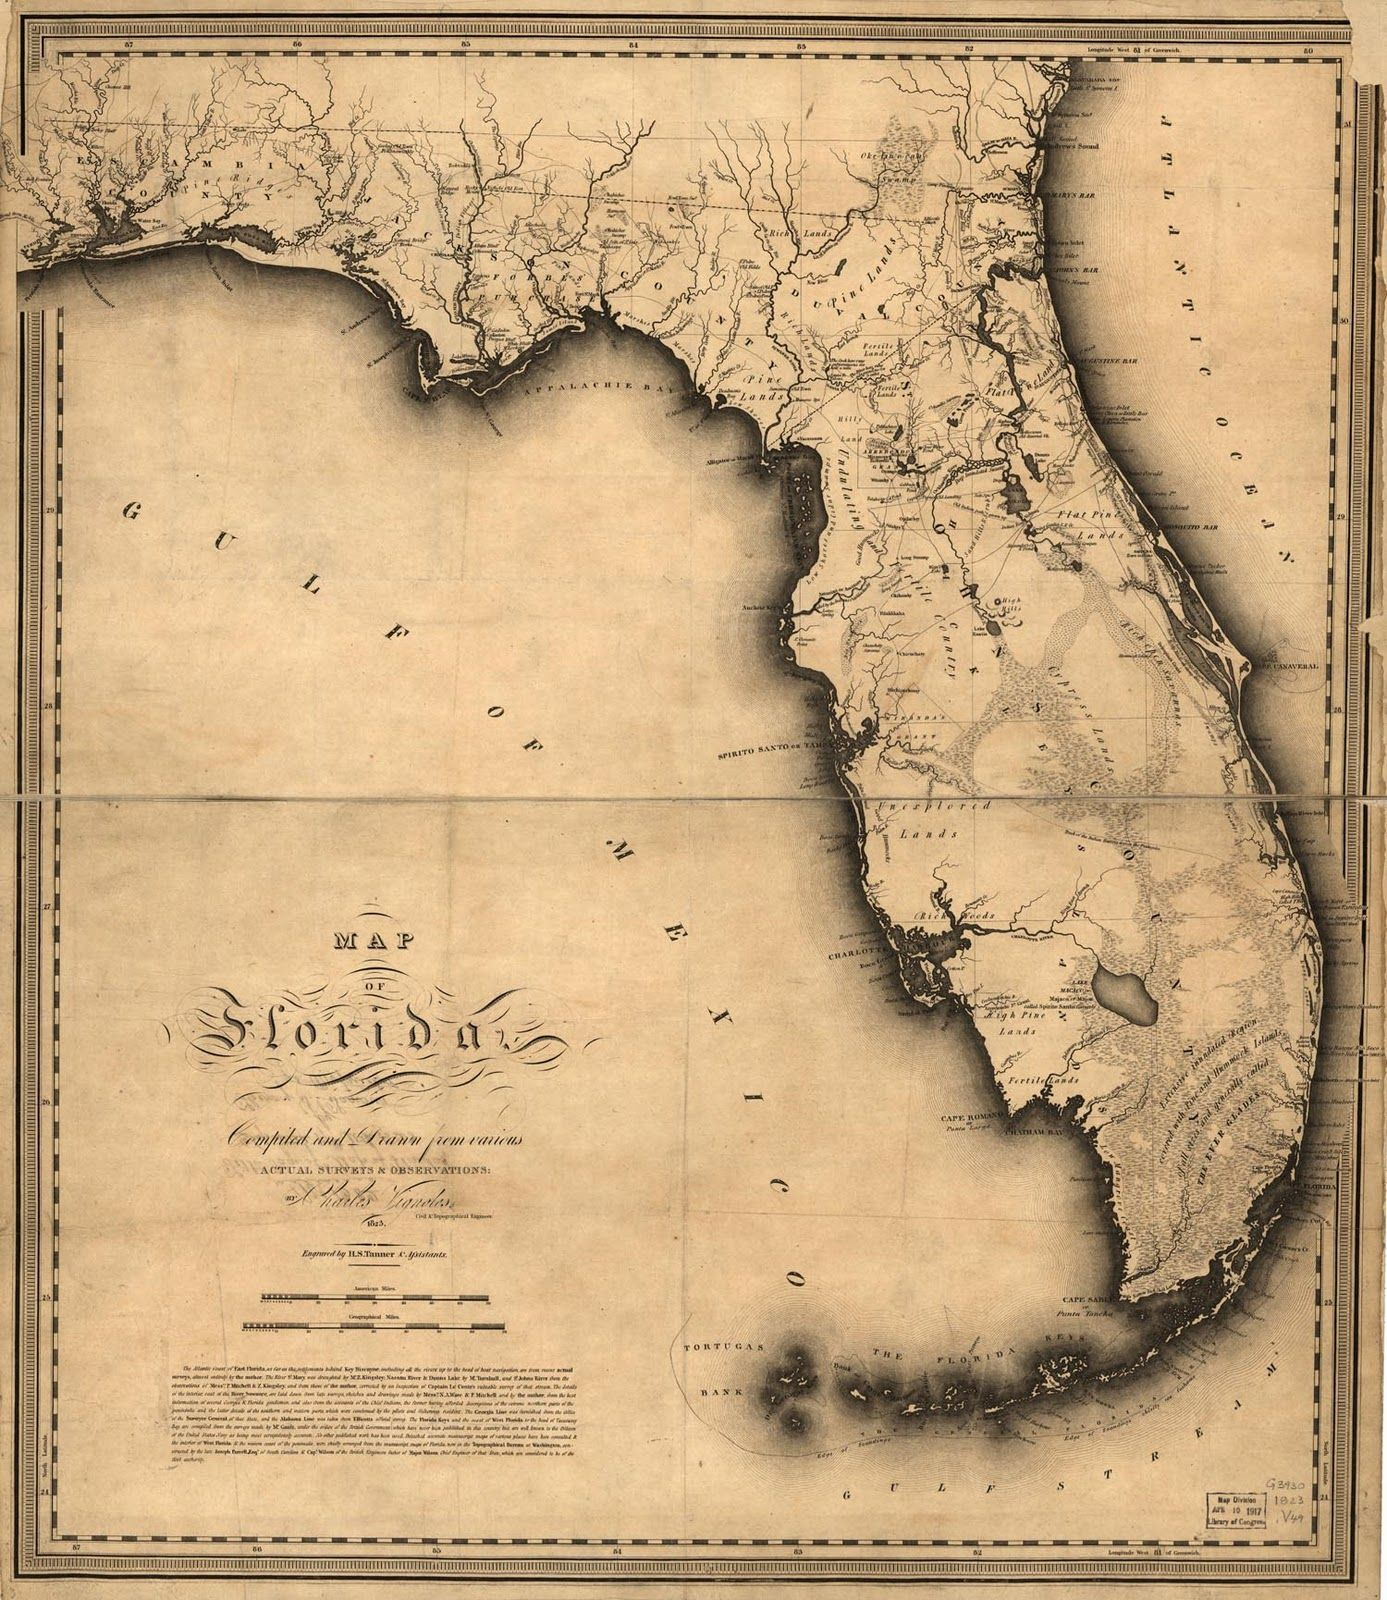 1823, Florida State Map, Florida, United States Giclee Print ... on maps of delaware shape, florida state shape, map of connecticut shape, map of kentucky shape, map of washington dc shape,